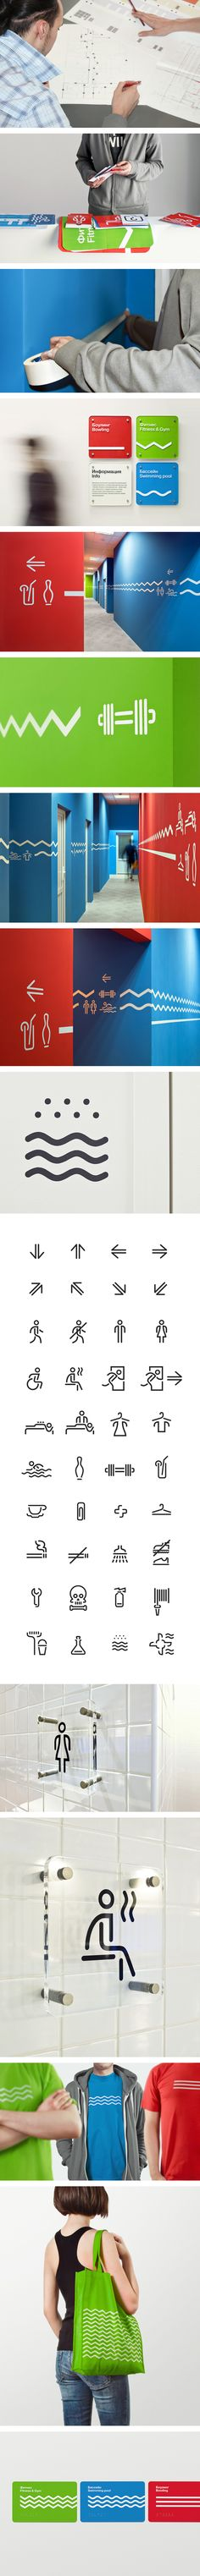 Wayfinding and identity for Voskresenskoe by TOMATDESIGN